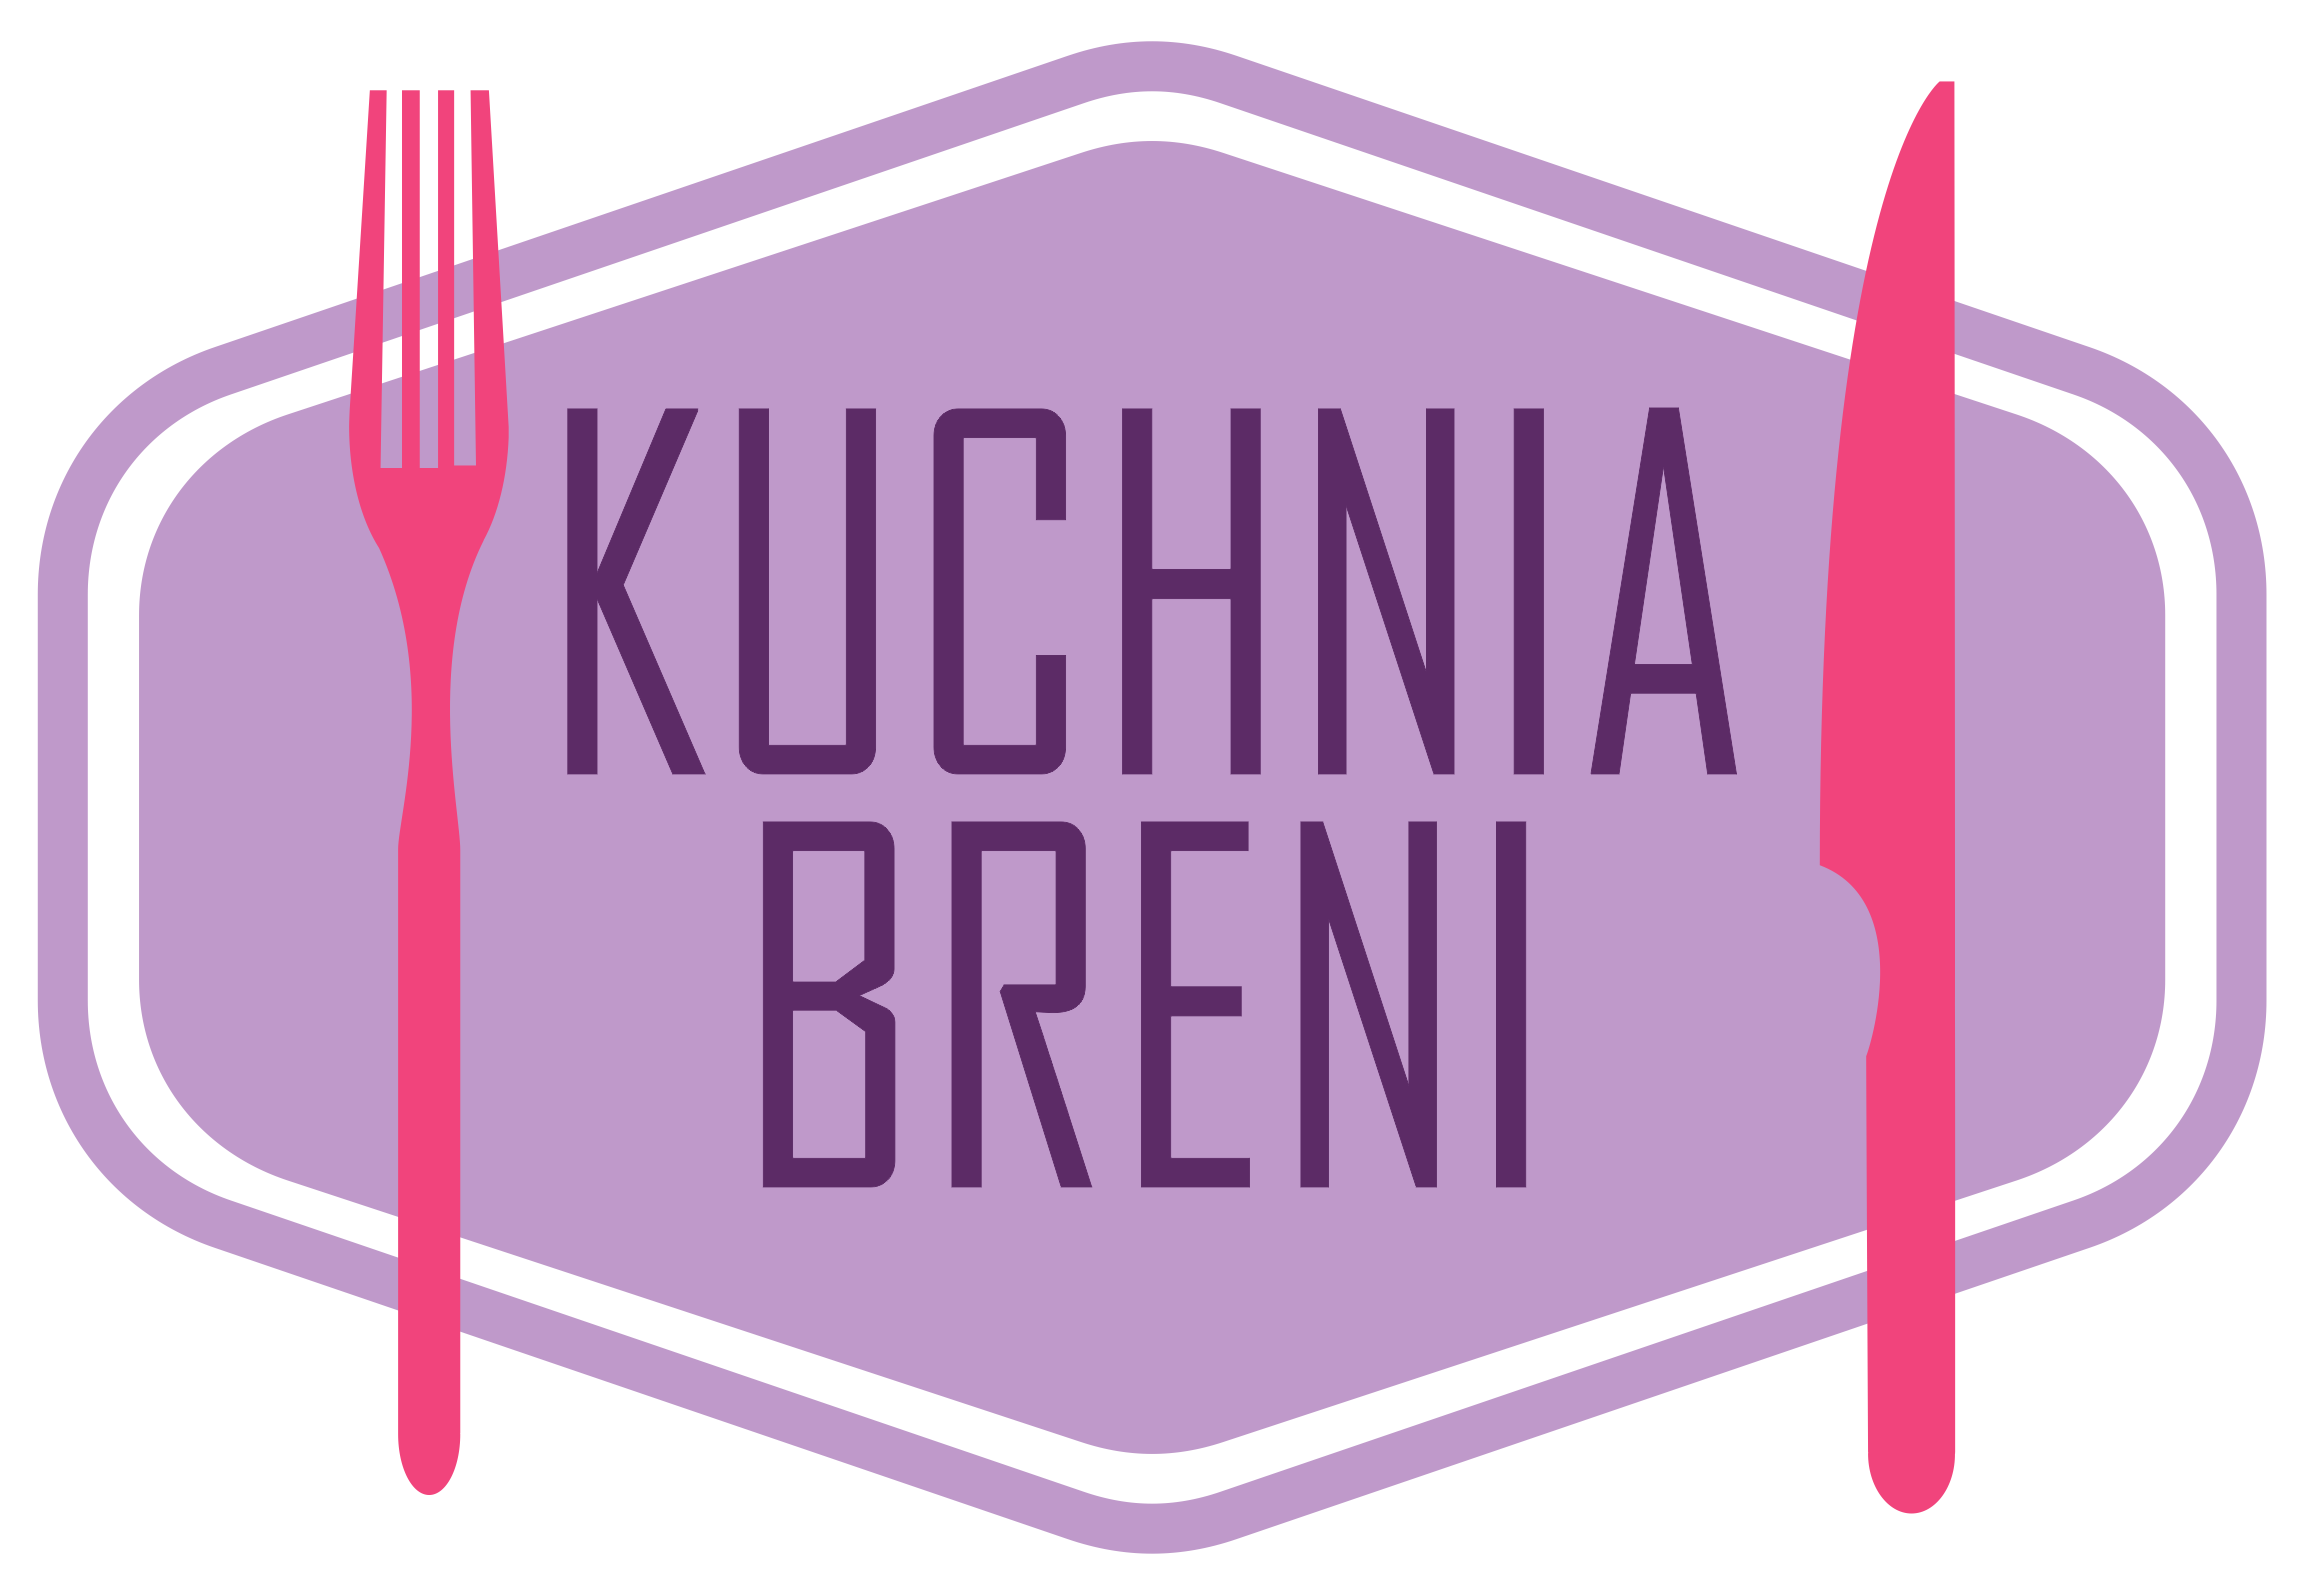 Kuchnia Breni